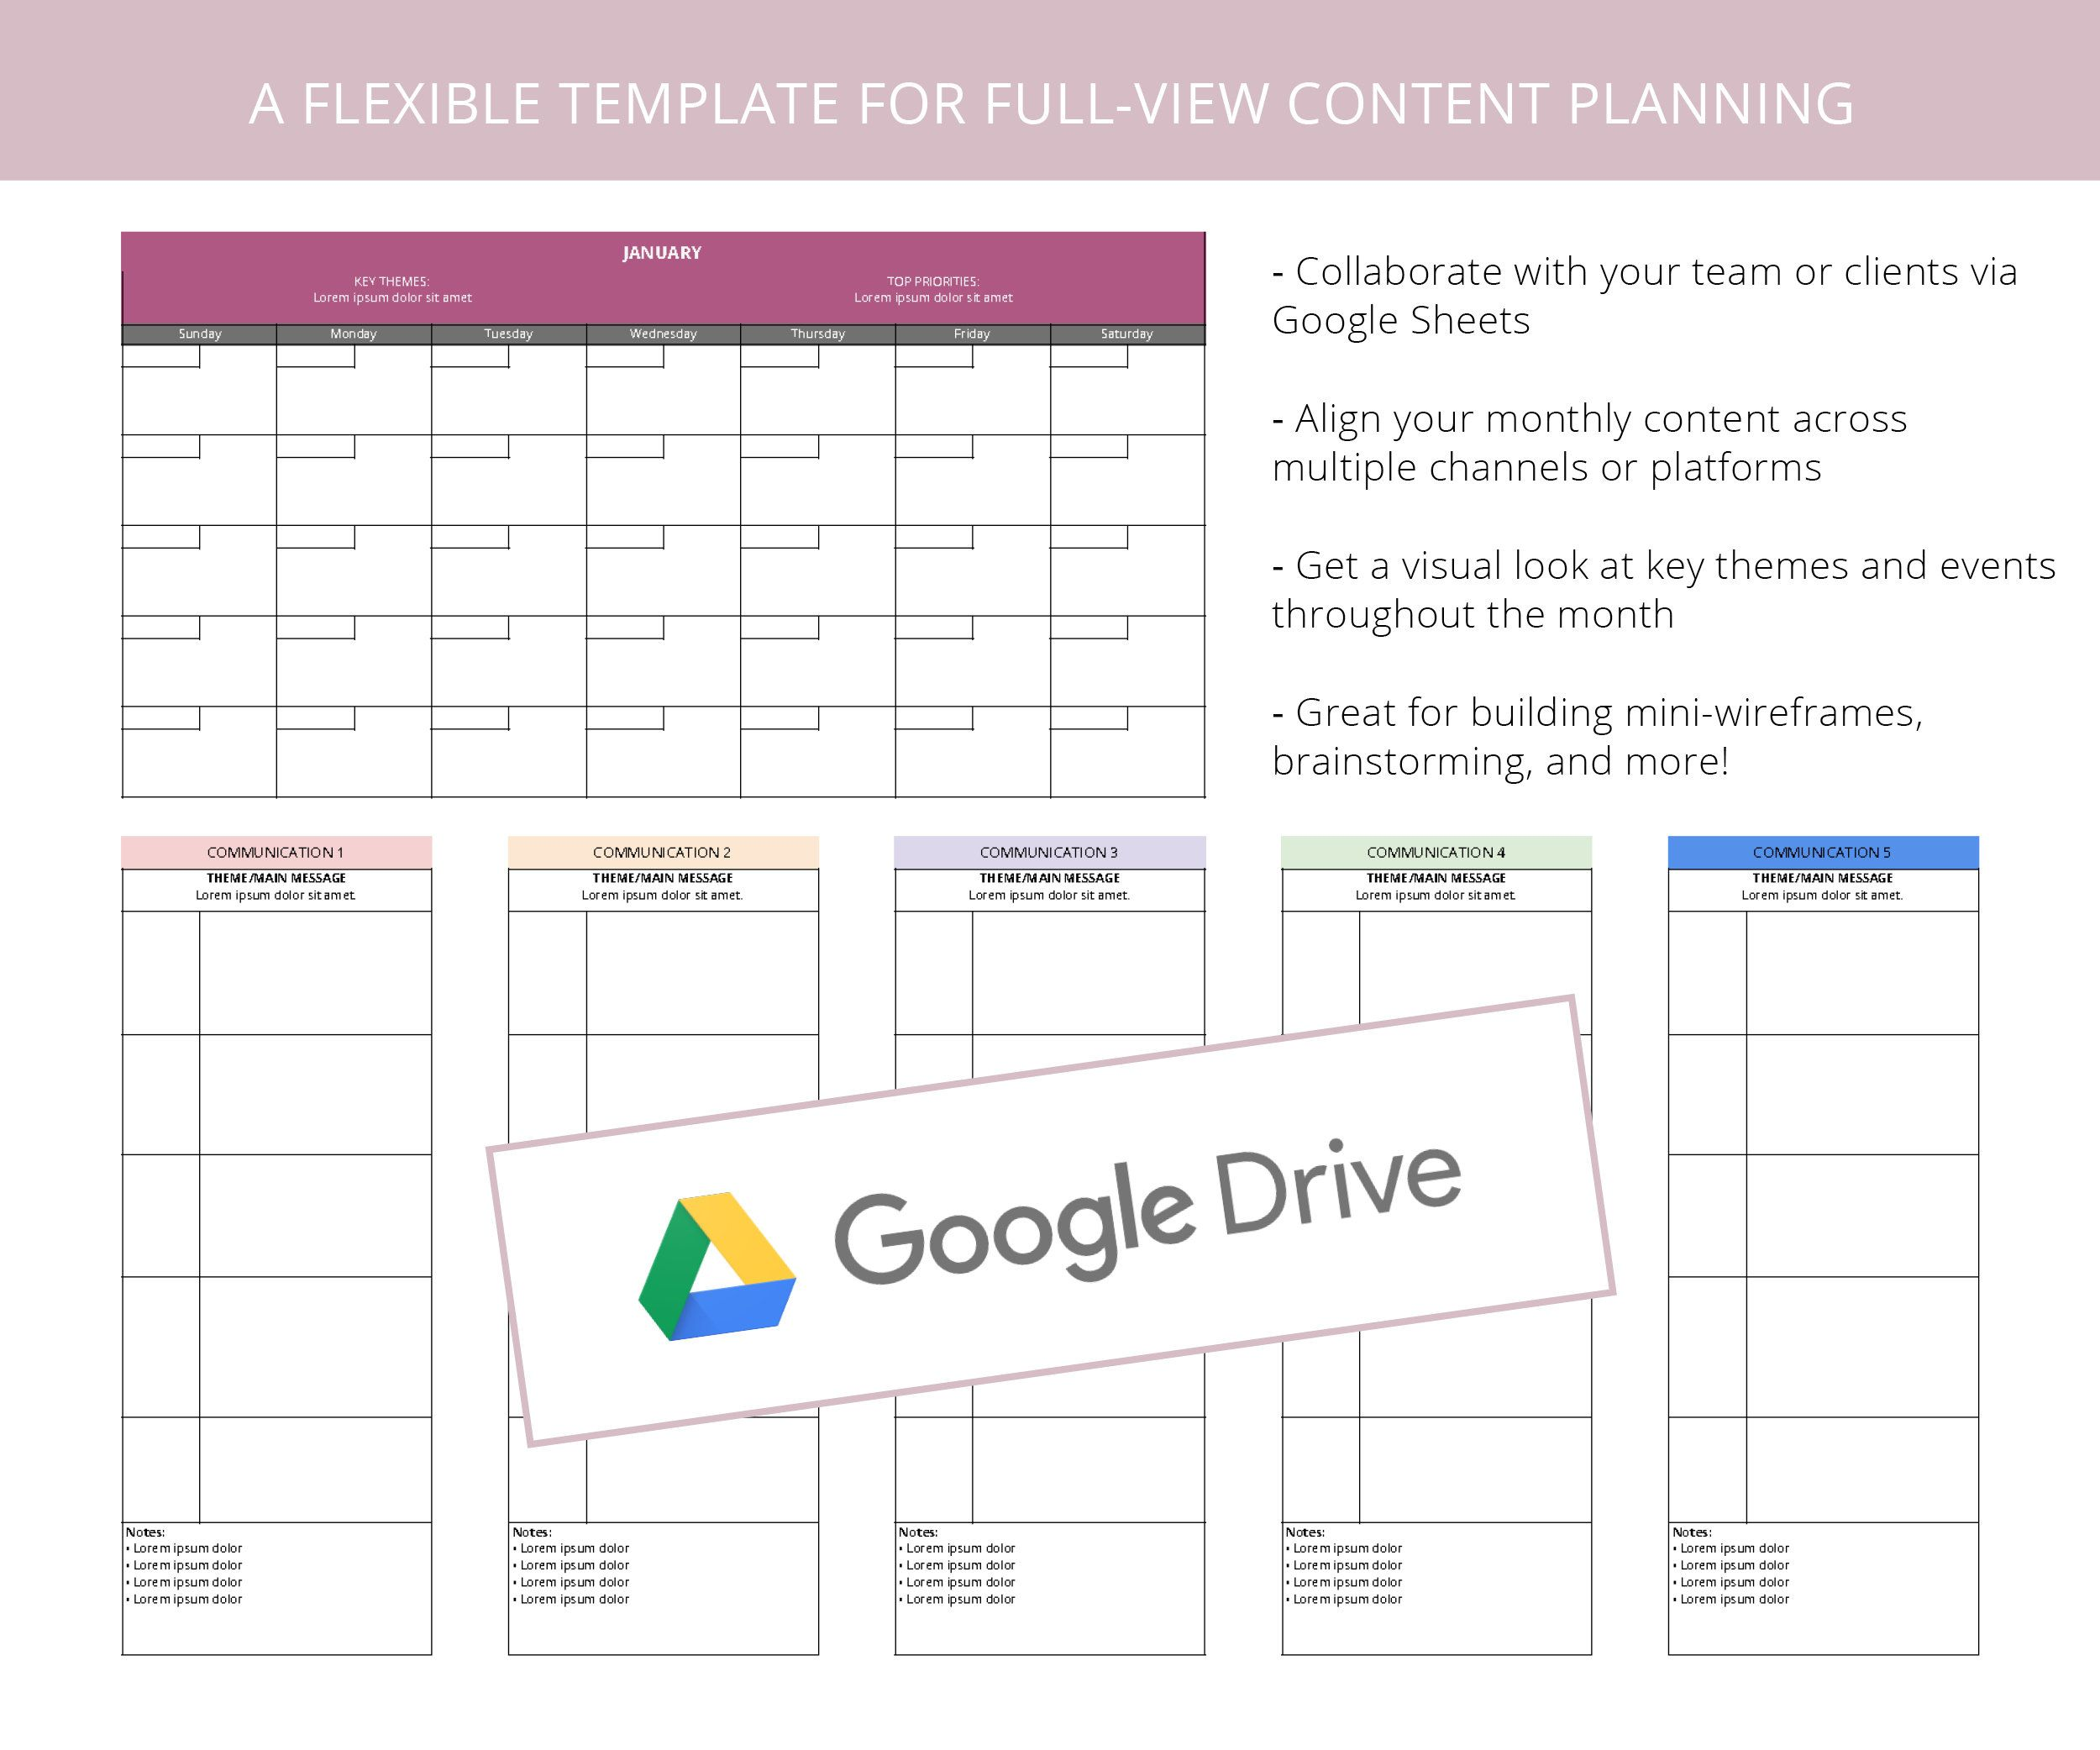 Two Dollar Time Saver Download A Pre Made Google Docs Google Sheets Template For Planning Your Monthly Content Strategy Stock Market How To Plan Google Docs